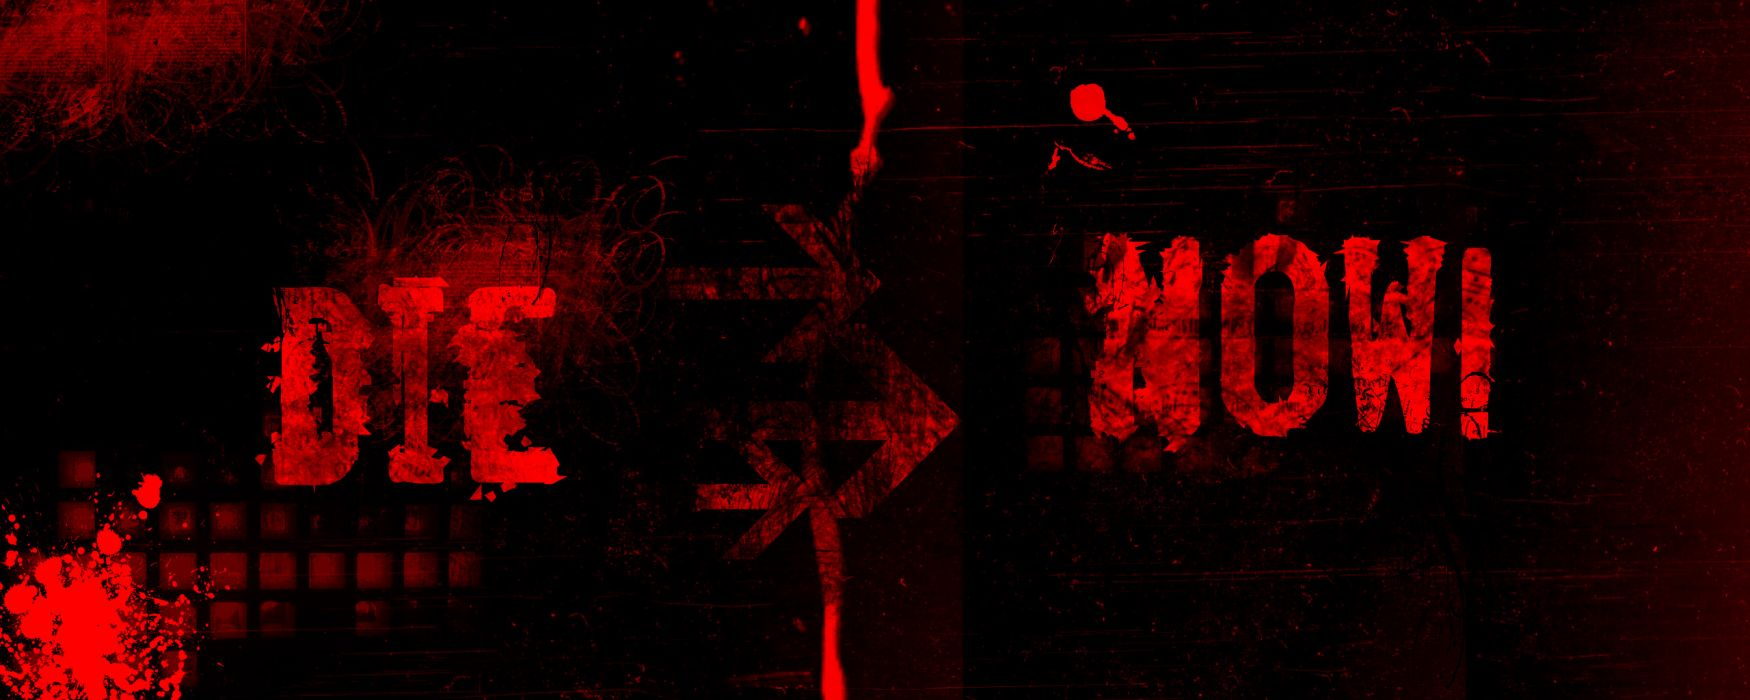 abstract red blood typography die wallpaper